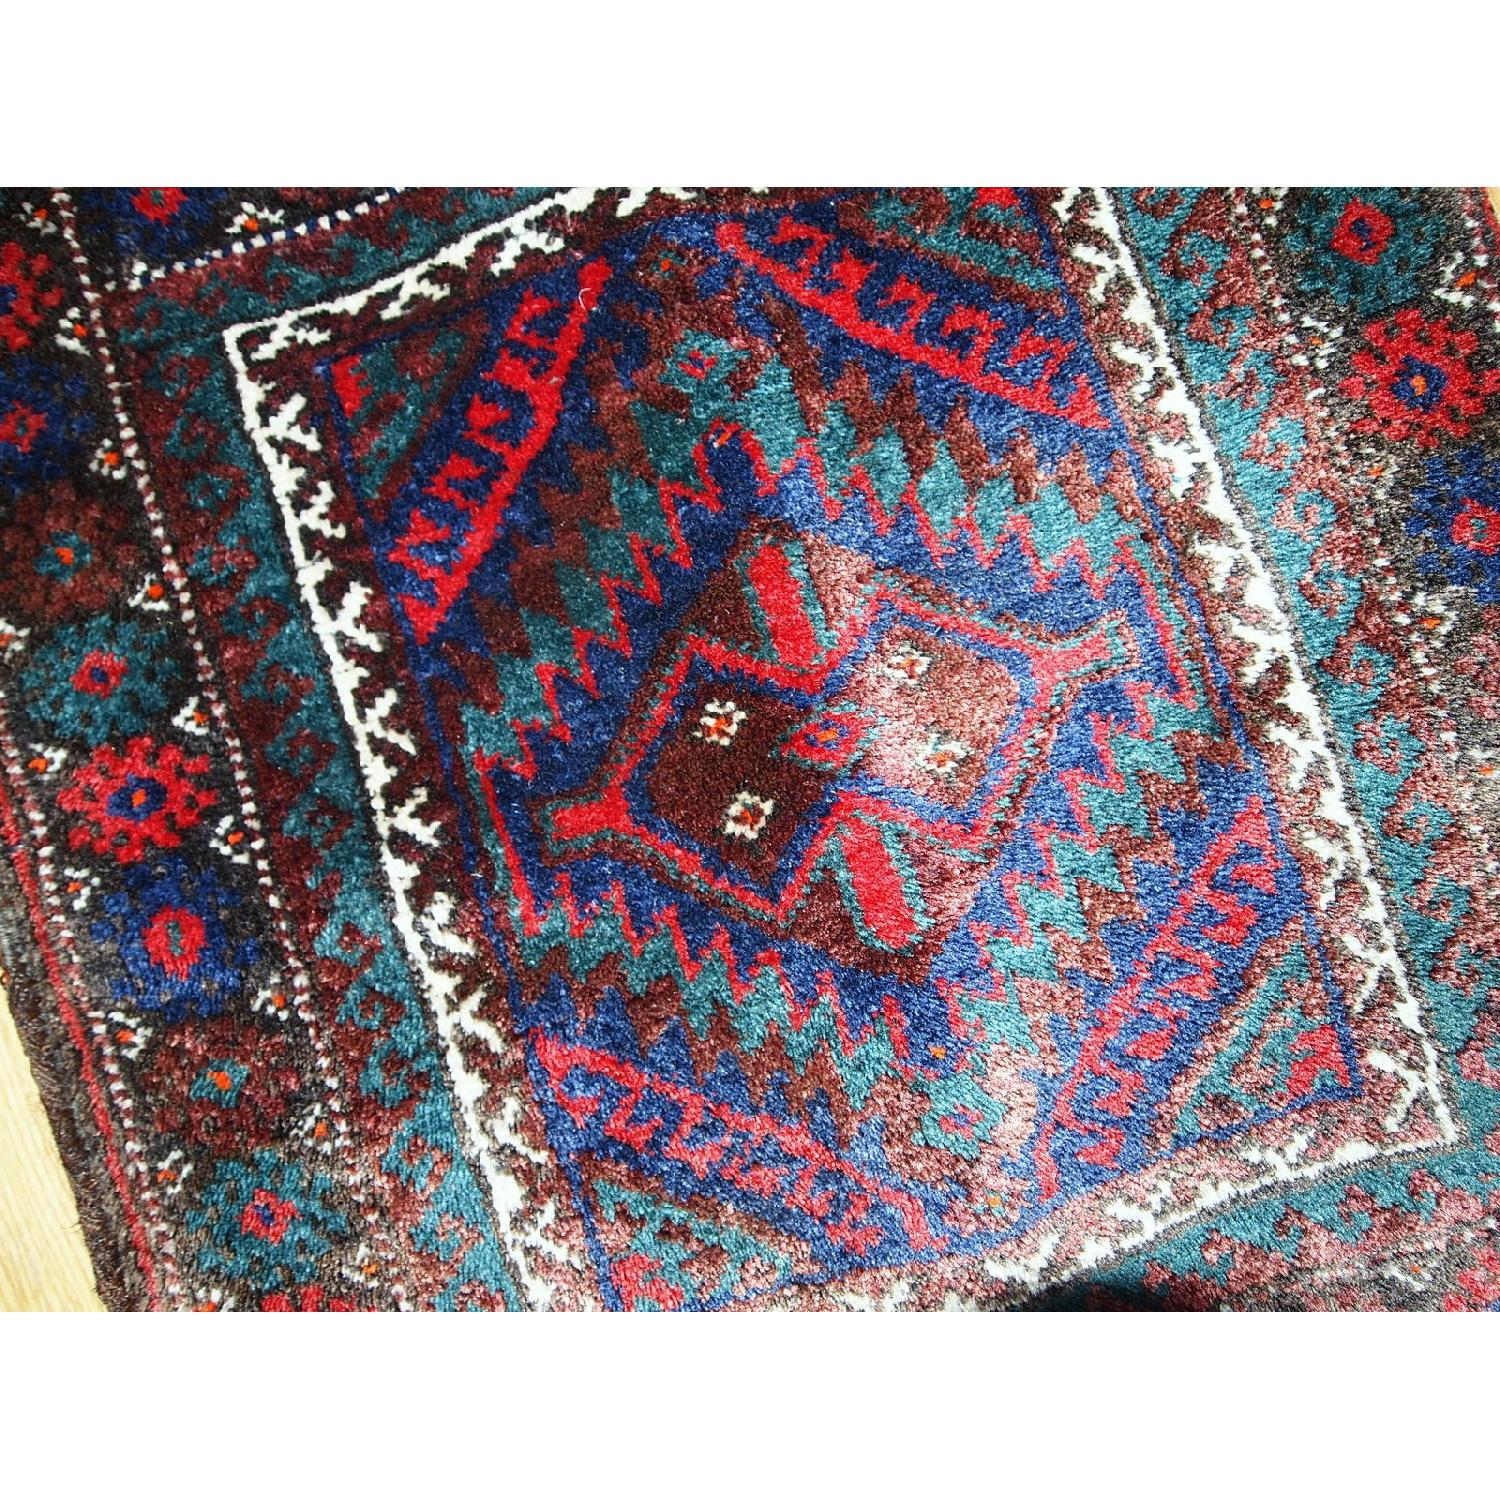 Antique Handmade Persian Kurdish Salt Bag Rug-11